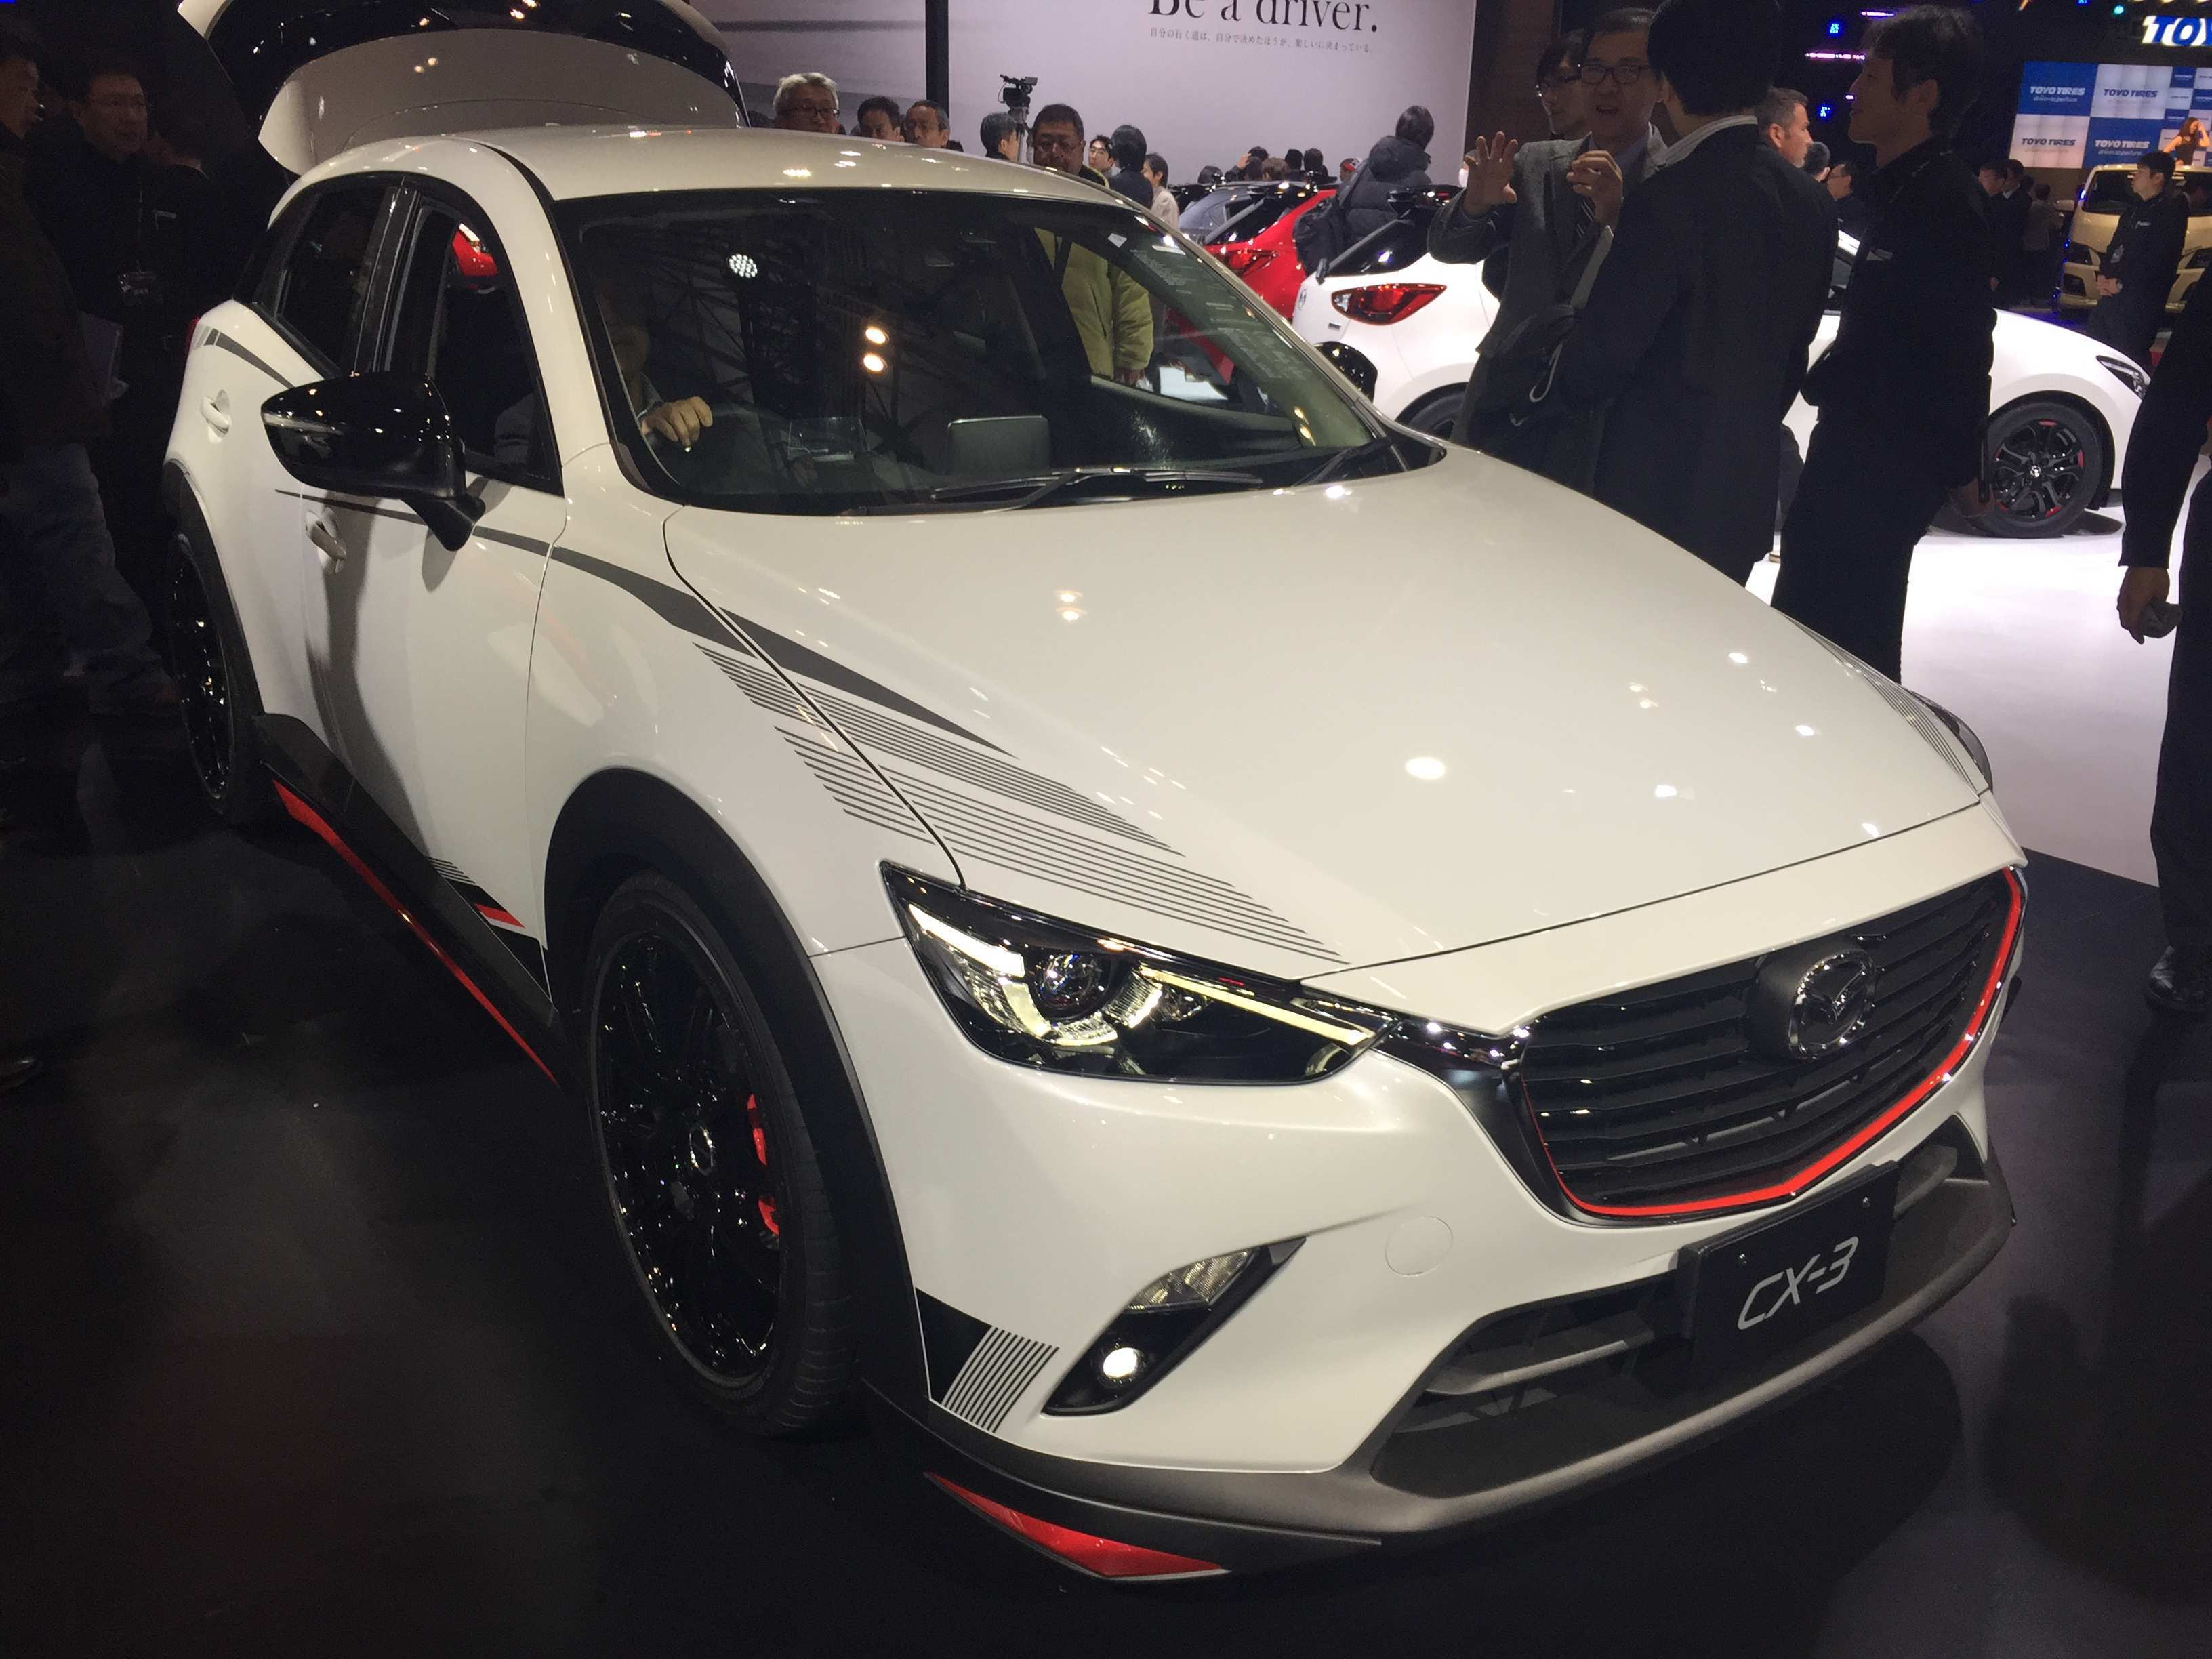 69 Best Review New Mazda 3 2019 Wiki Price New Review with New Mazda 3 2019 Wiki Price